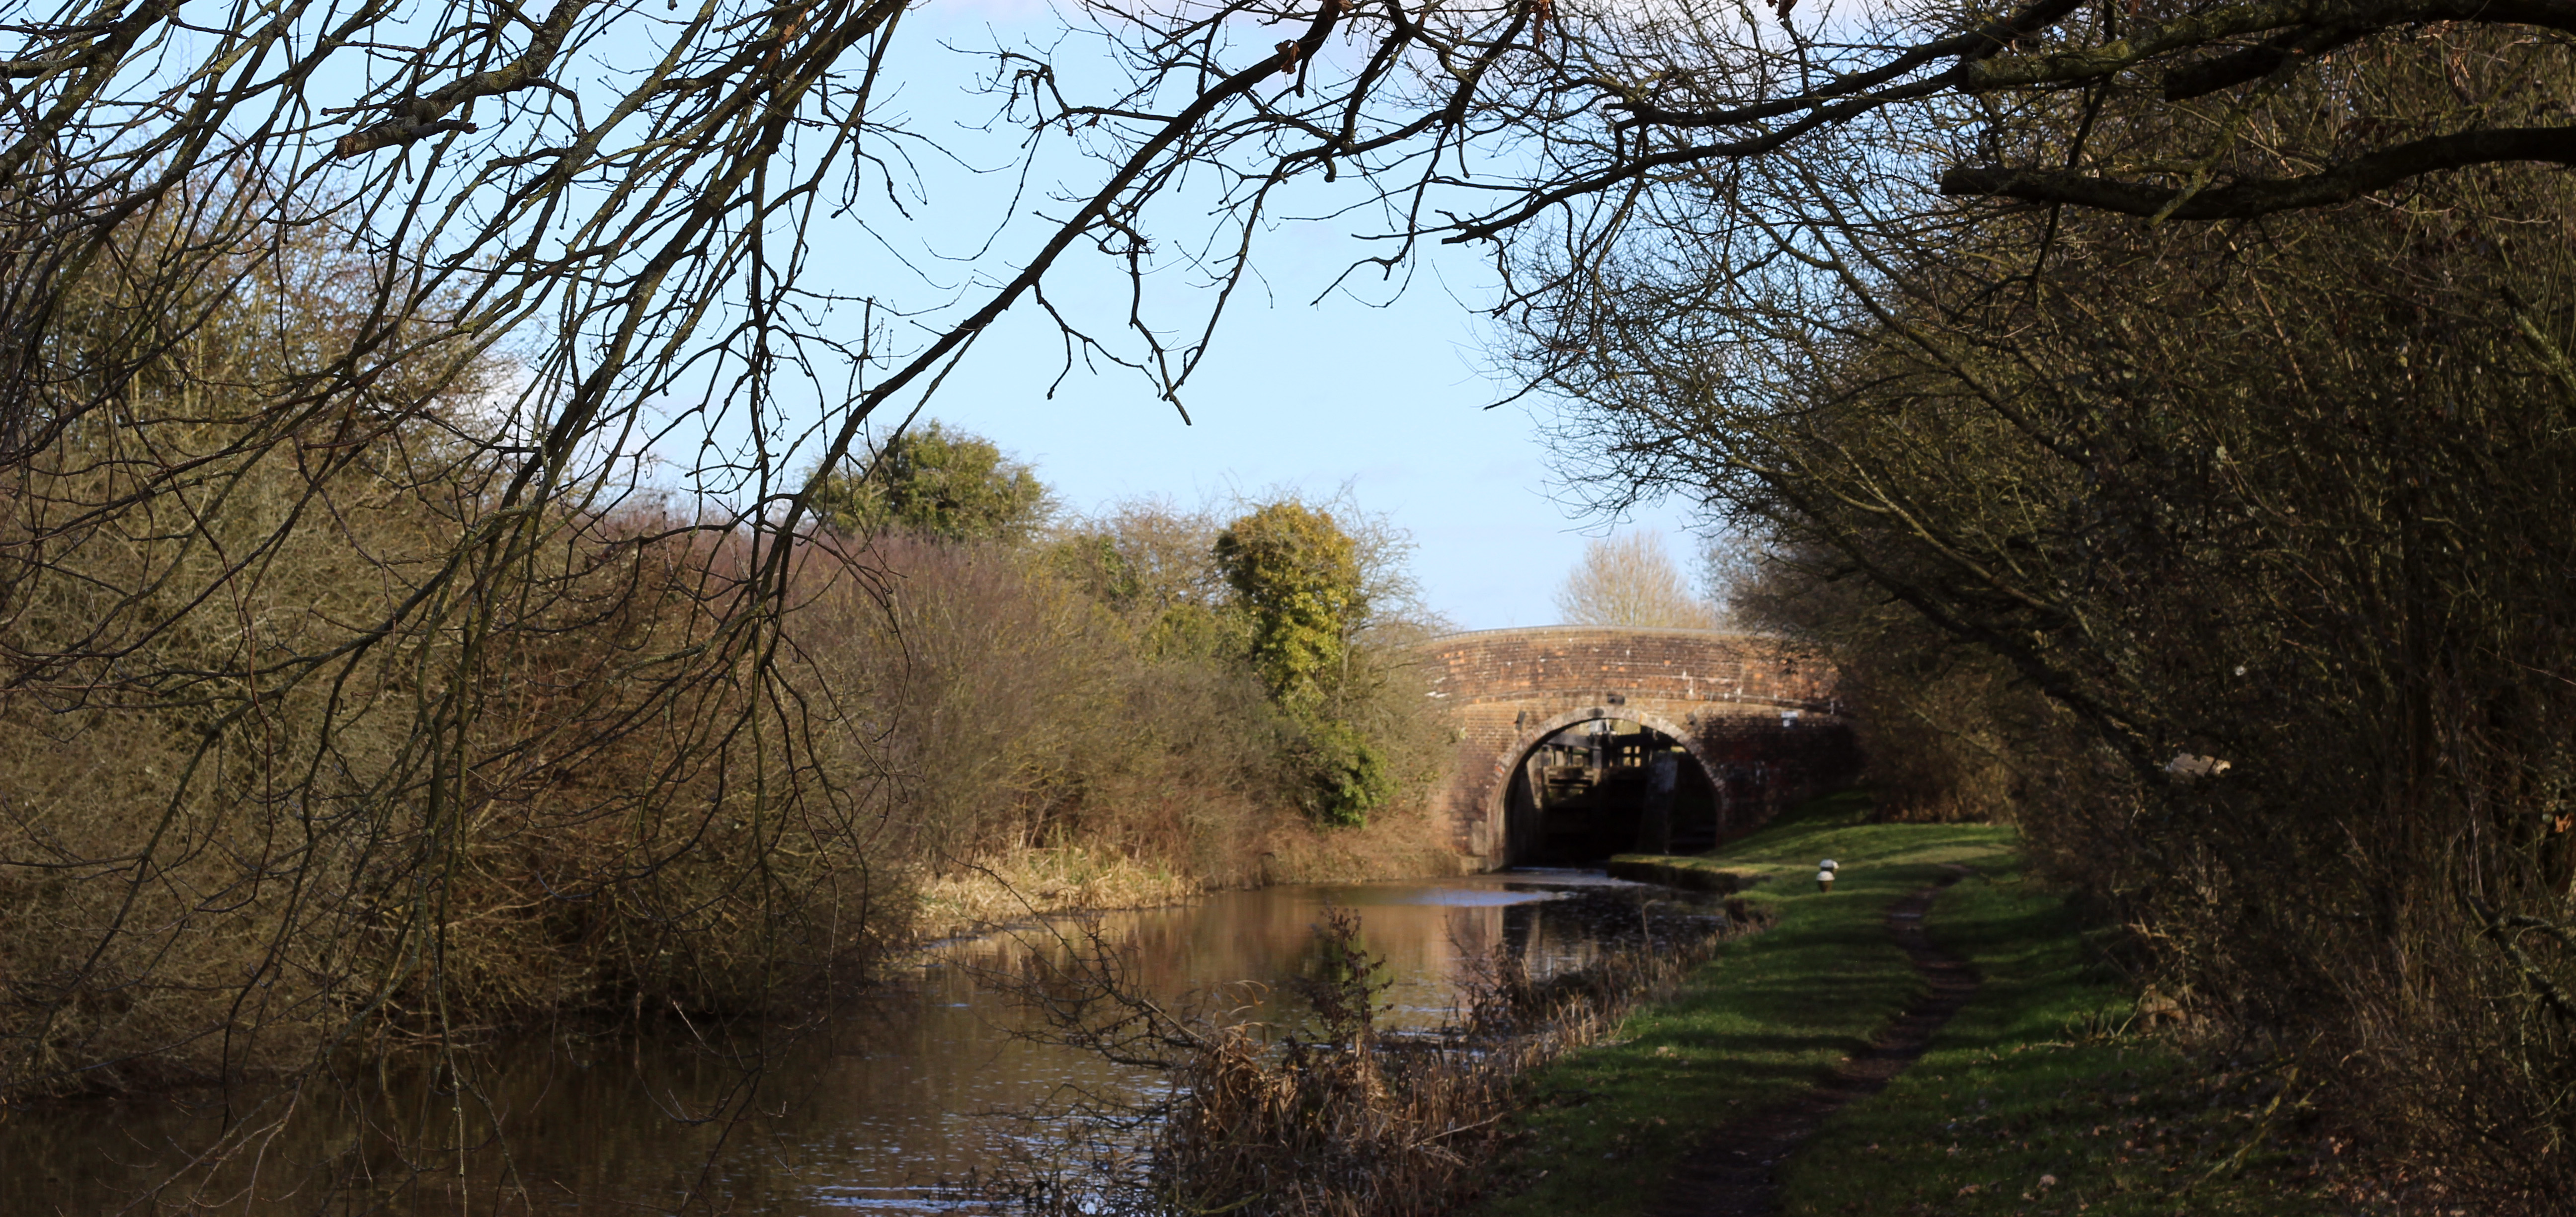 Green Infrastructure Mapping Canal Aylesbury Buckinghamshire